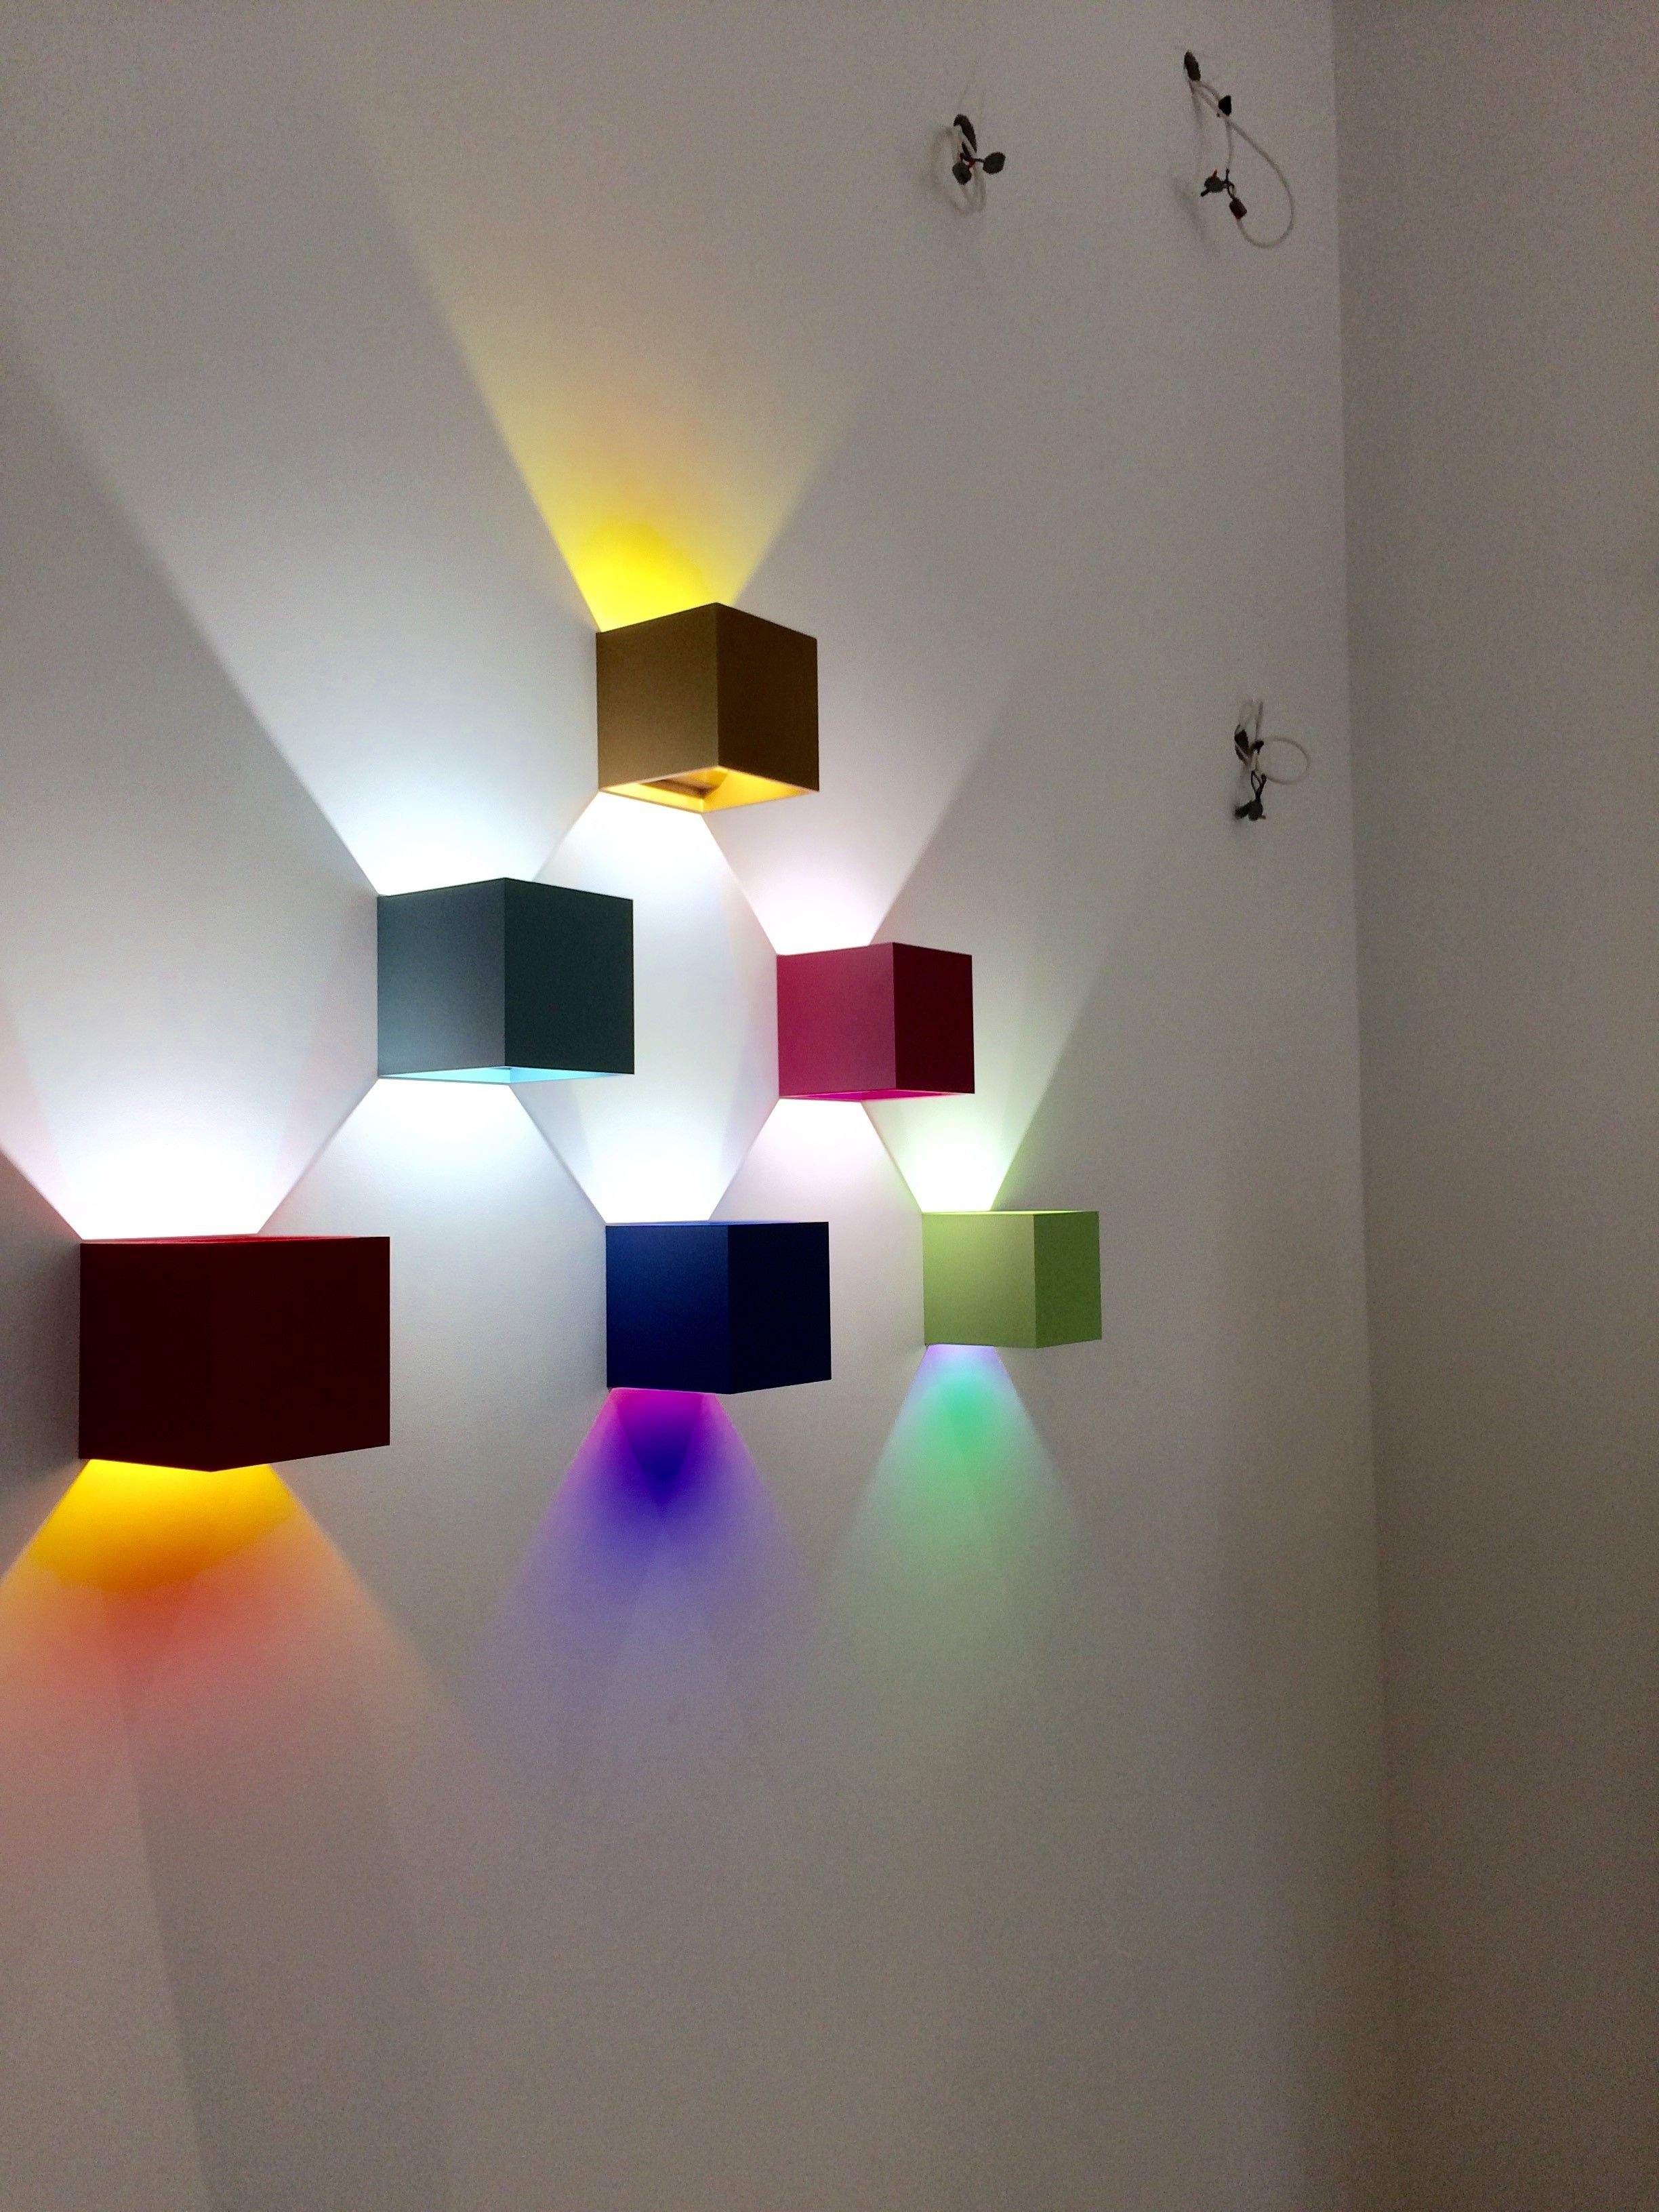 Prolicht dice wall light with colour filter www ladgroup com au